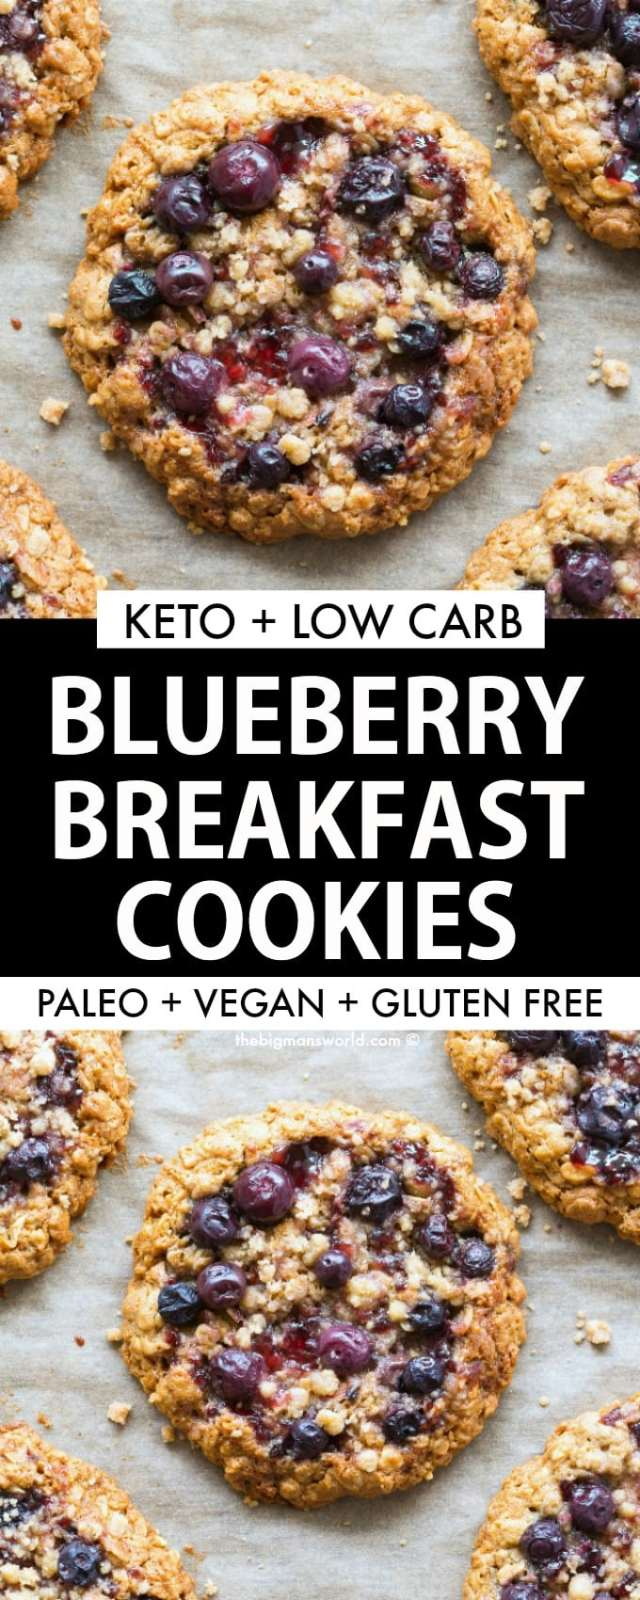 Blueberry Breakfast Cookies made eggless, vegan and comes with a keto and paleo option.